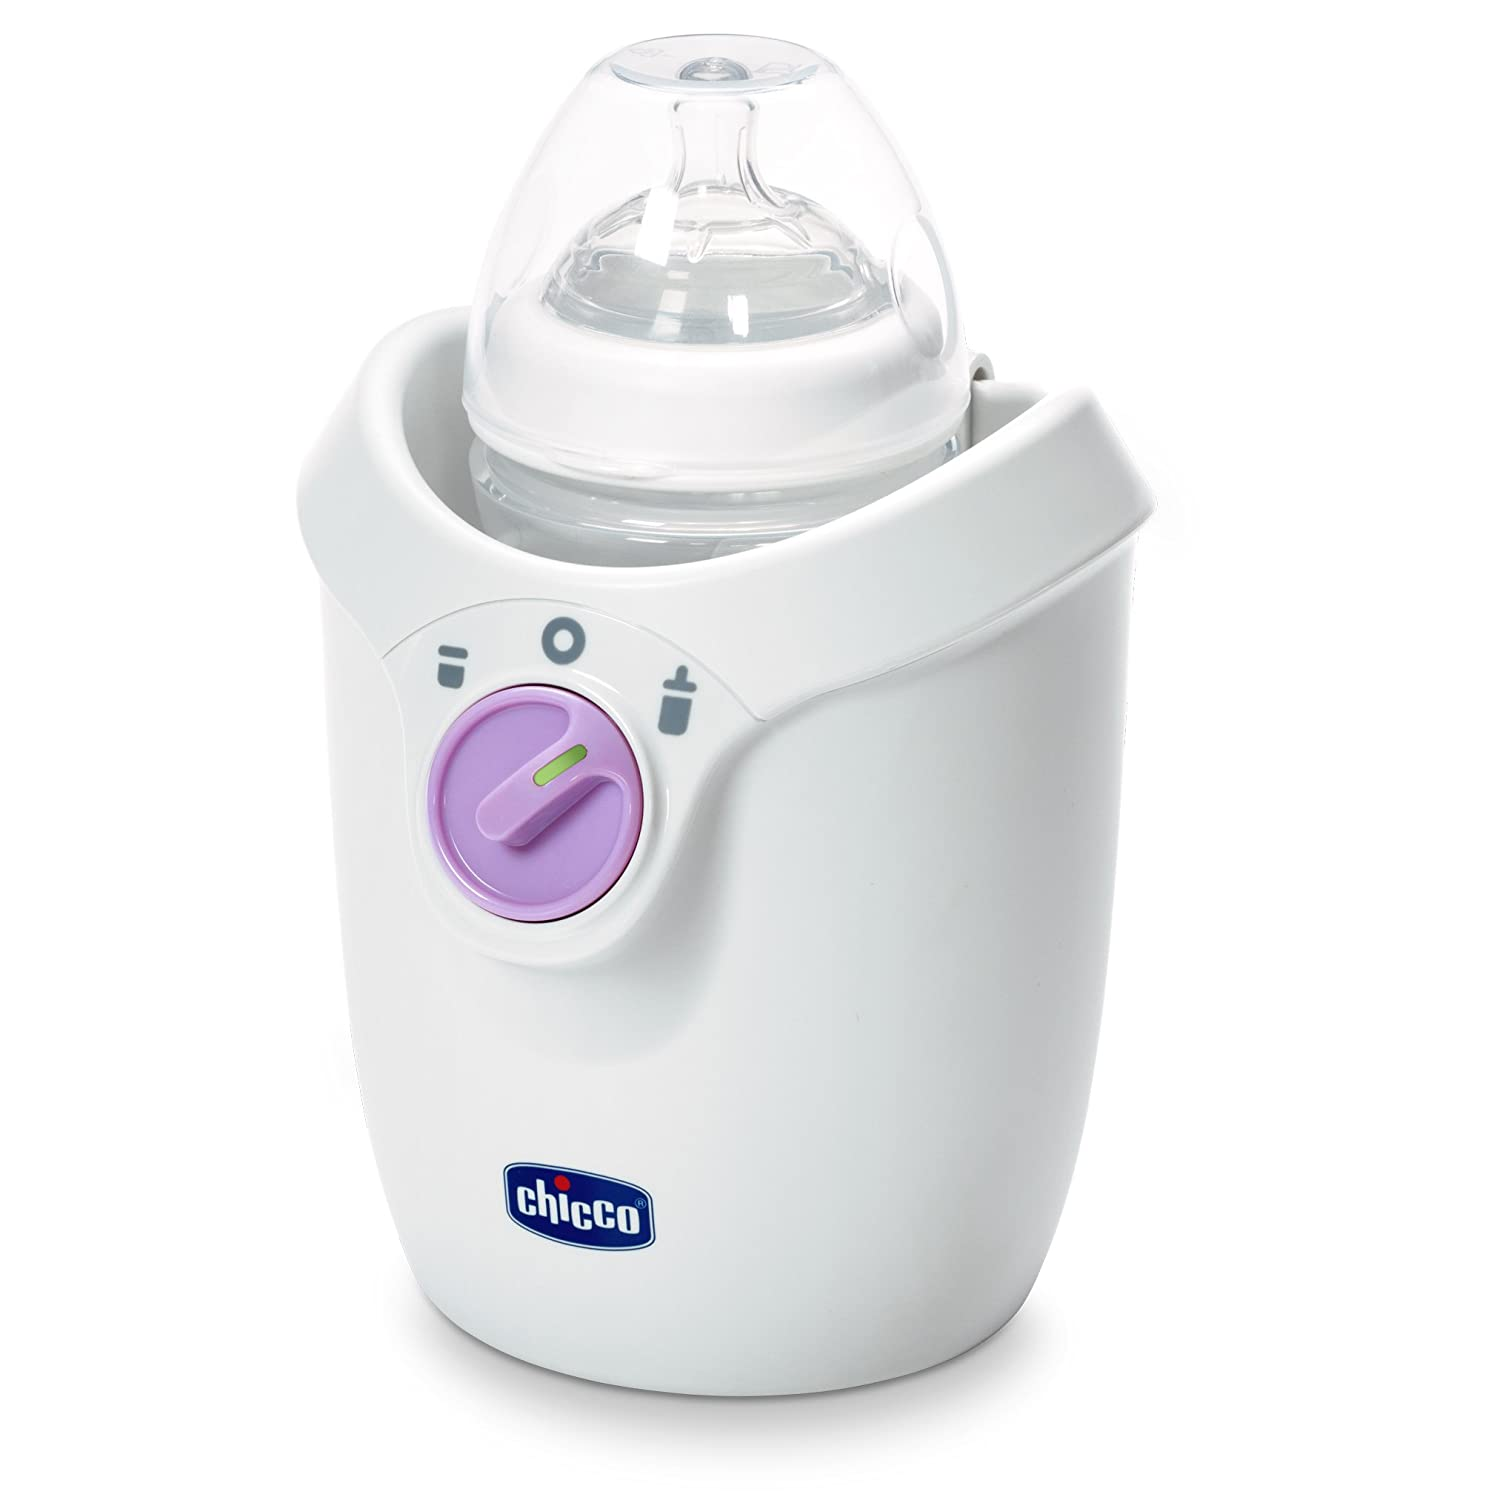 Chicco 6008000 Bottle and Baby Food Warmer, White 00060080000070